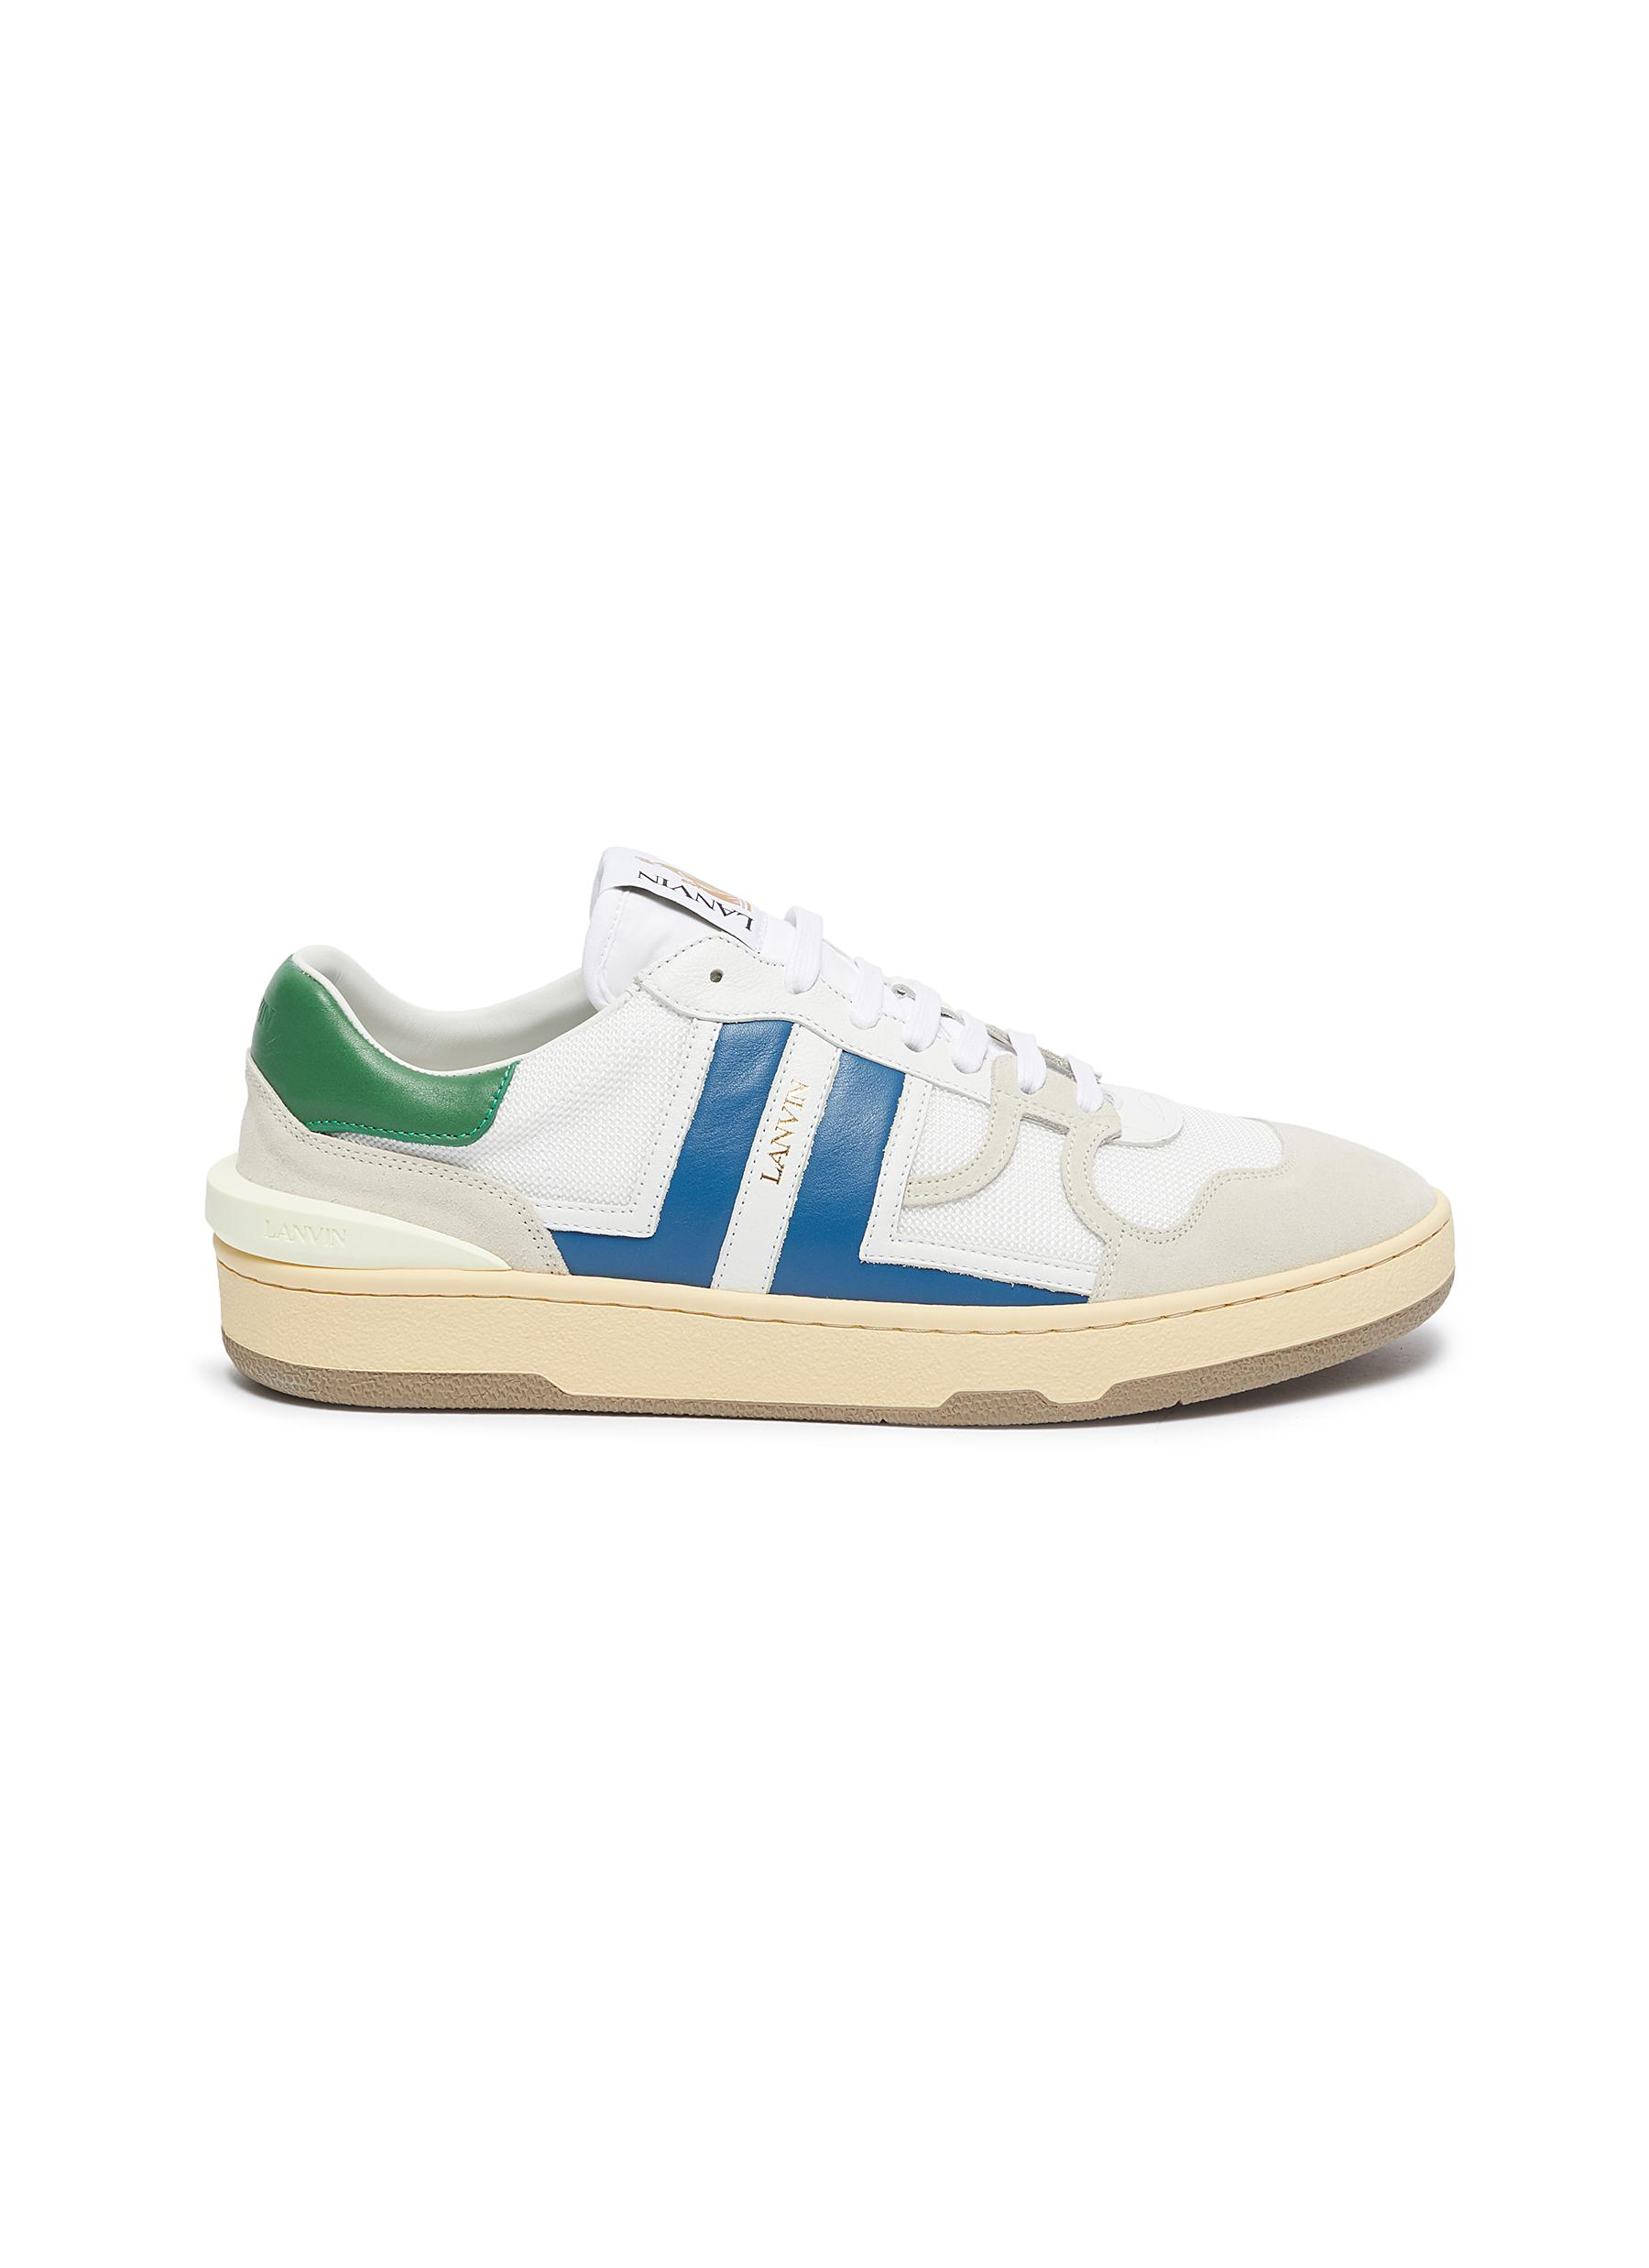 Lanvin COLOURBLOCK LEATHER PANEL LOW TOP SNEAKERS